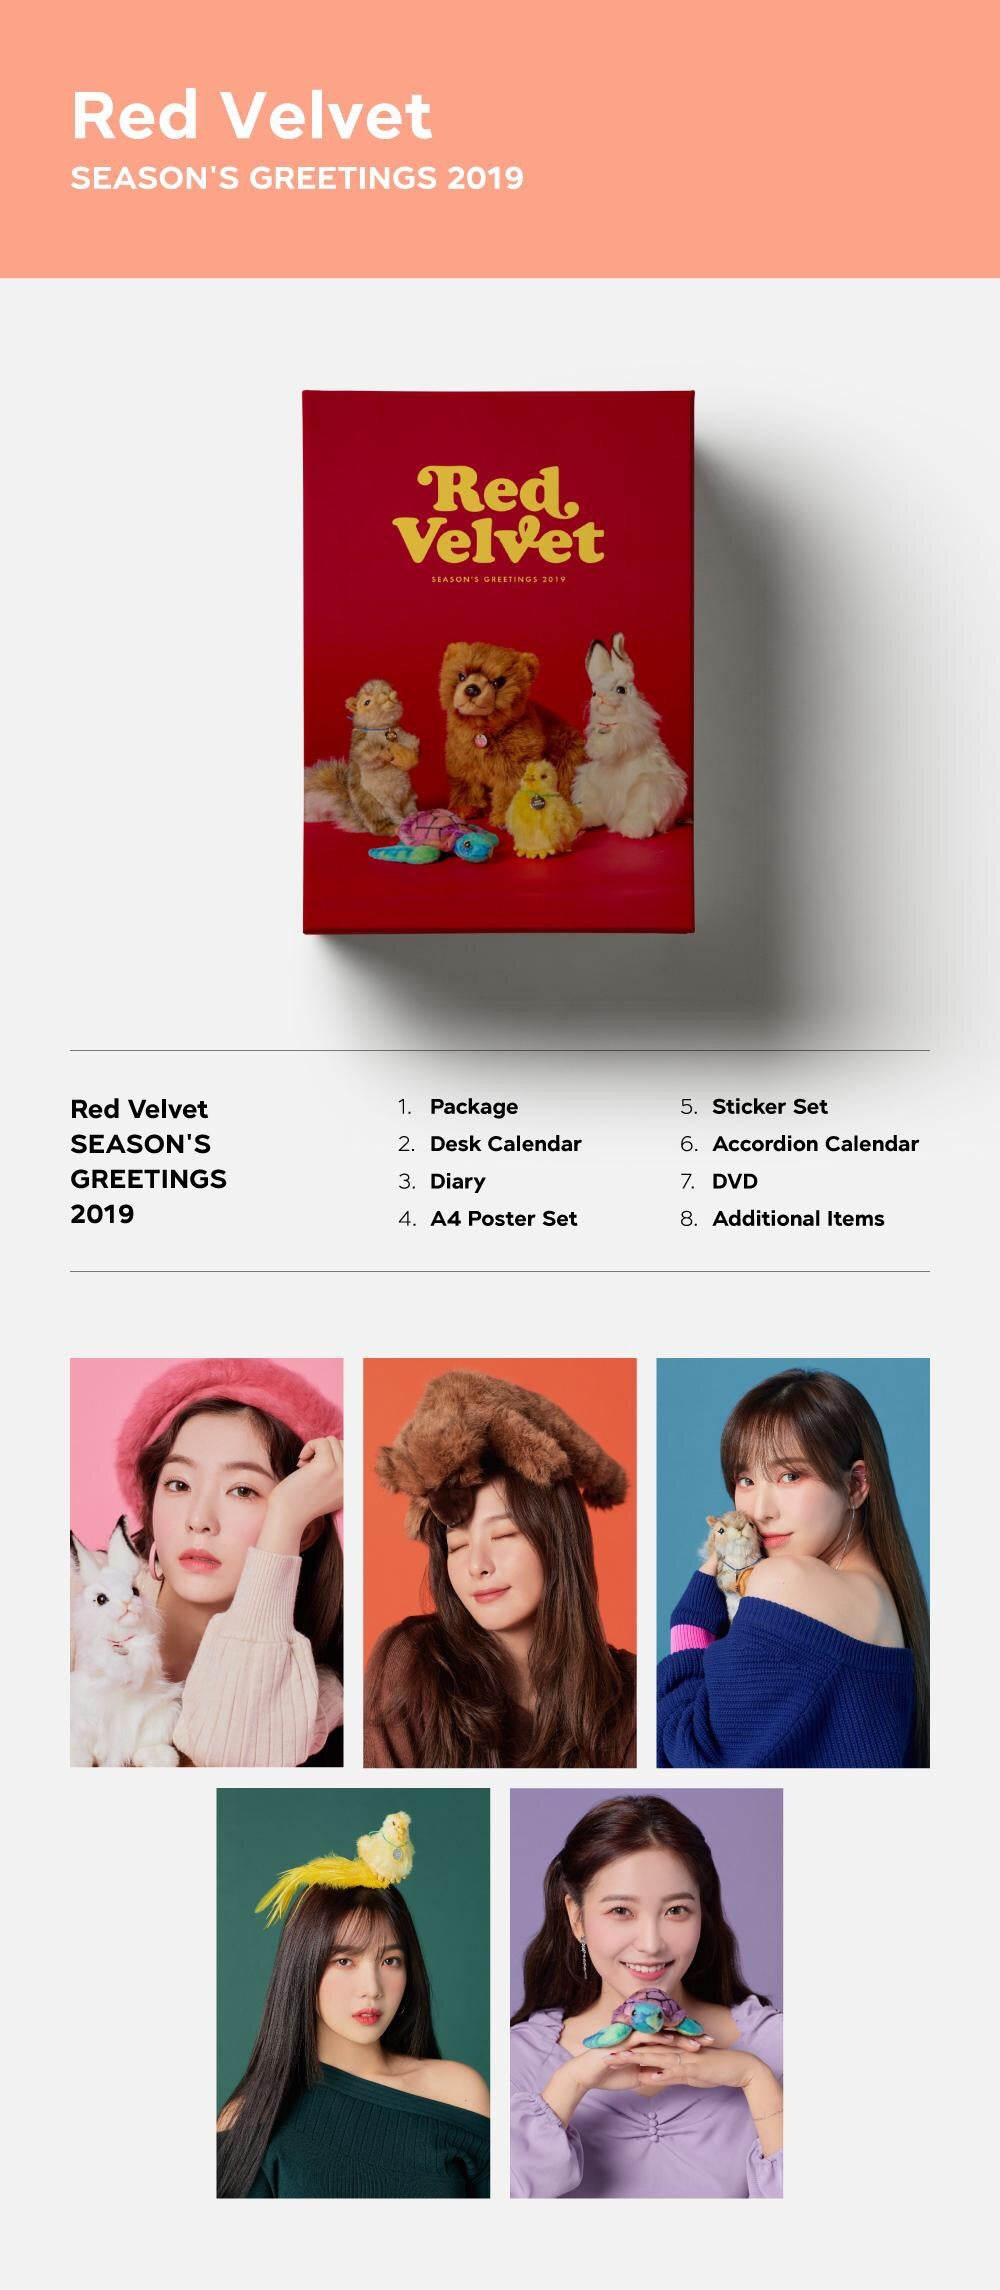 Red Velvet - 2019 Season's Greetings - Pre-Order